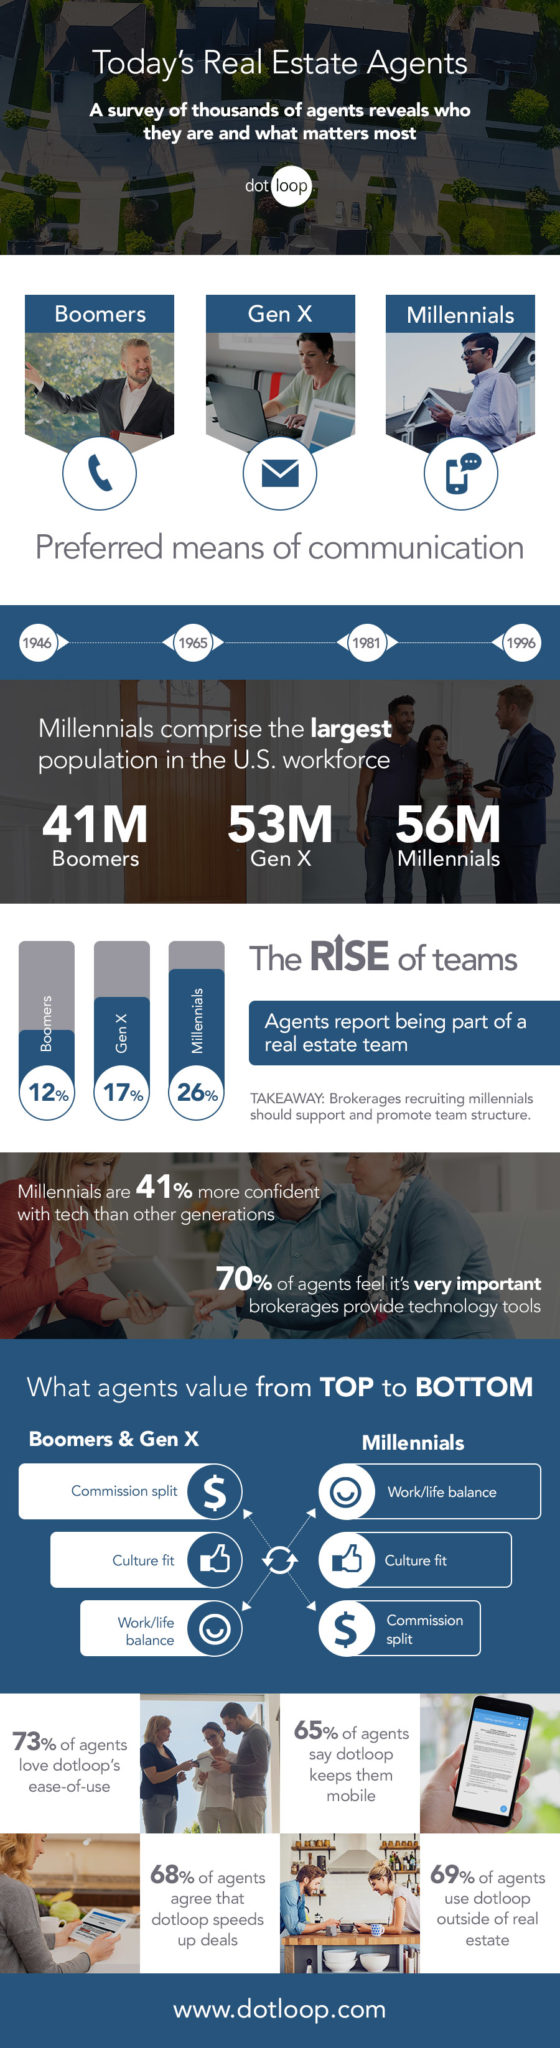 Infographic: Today's Real Estate Agents